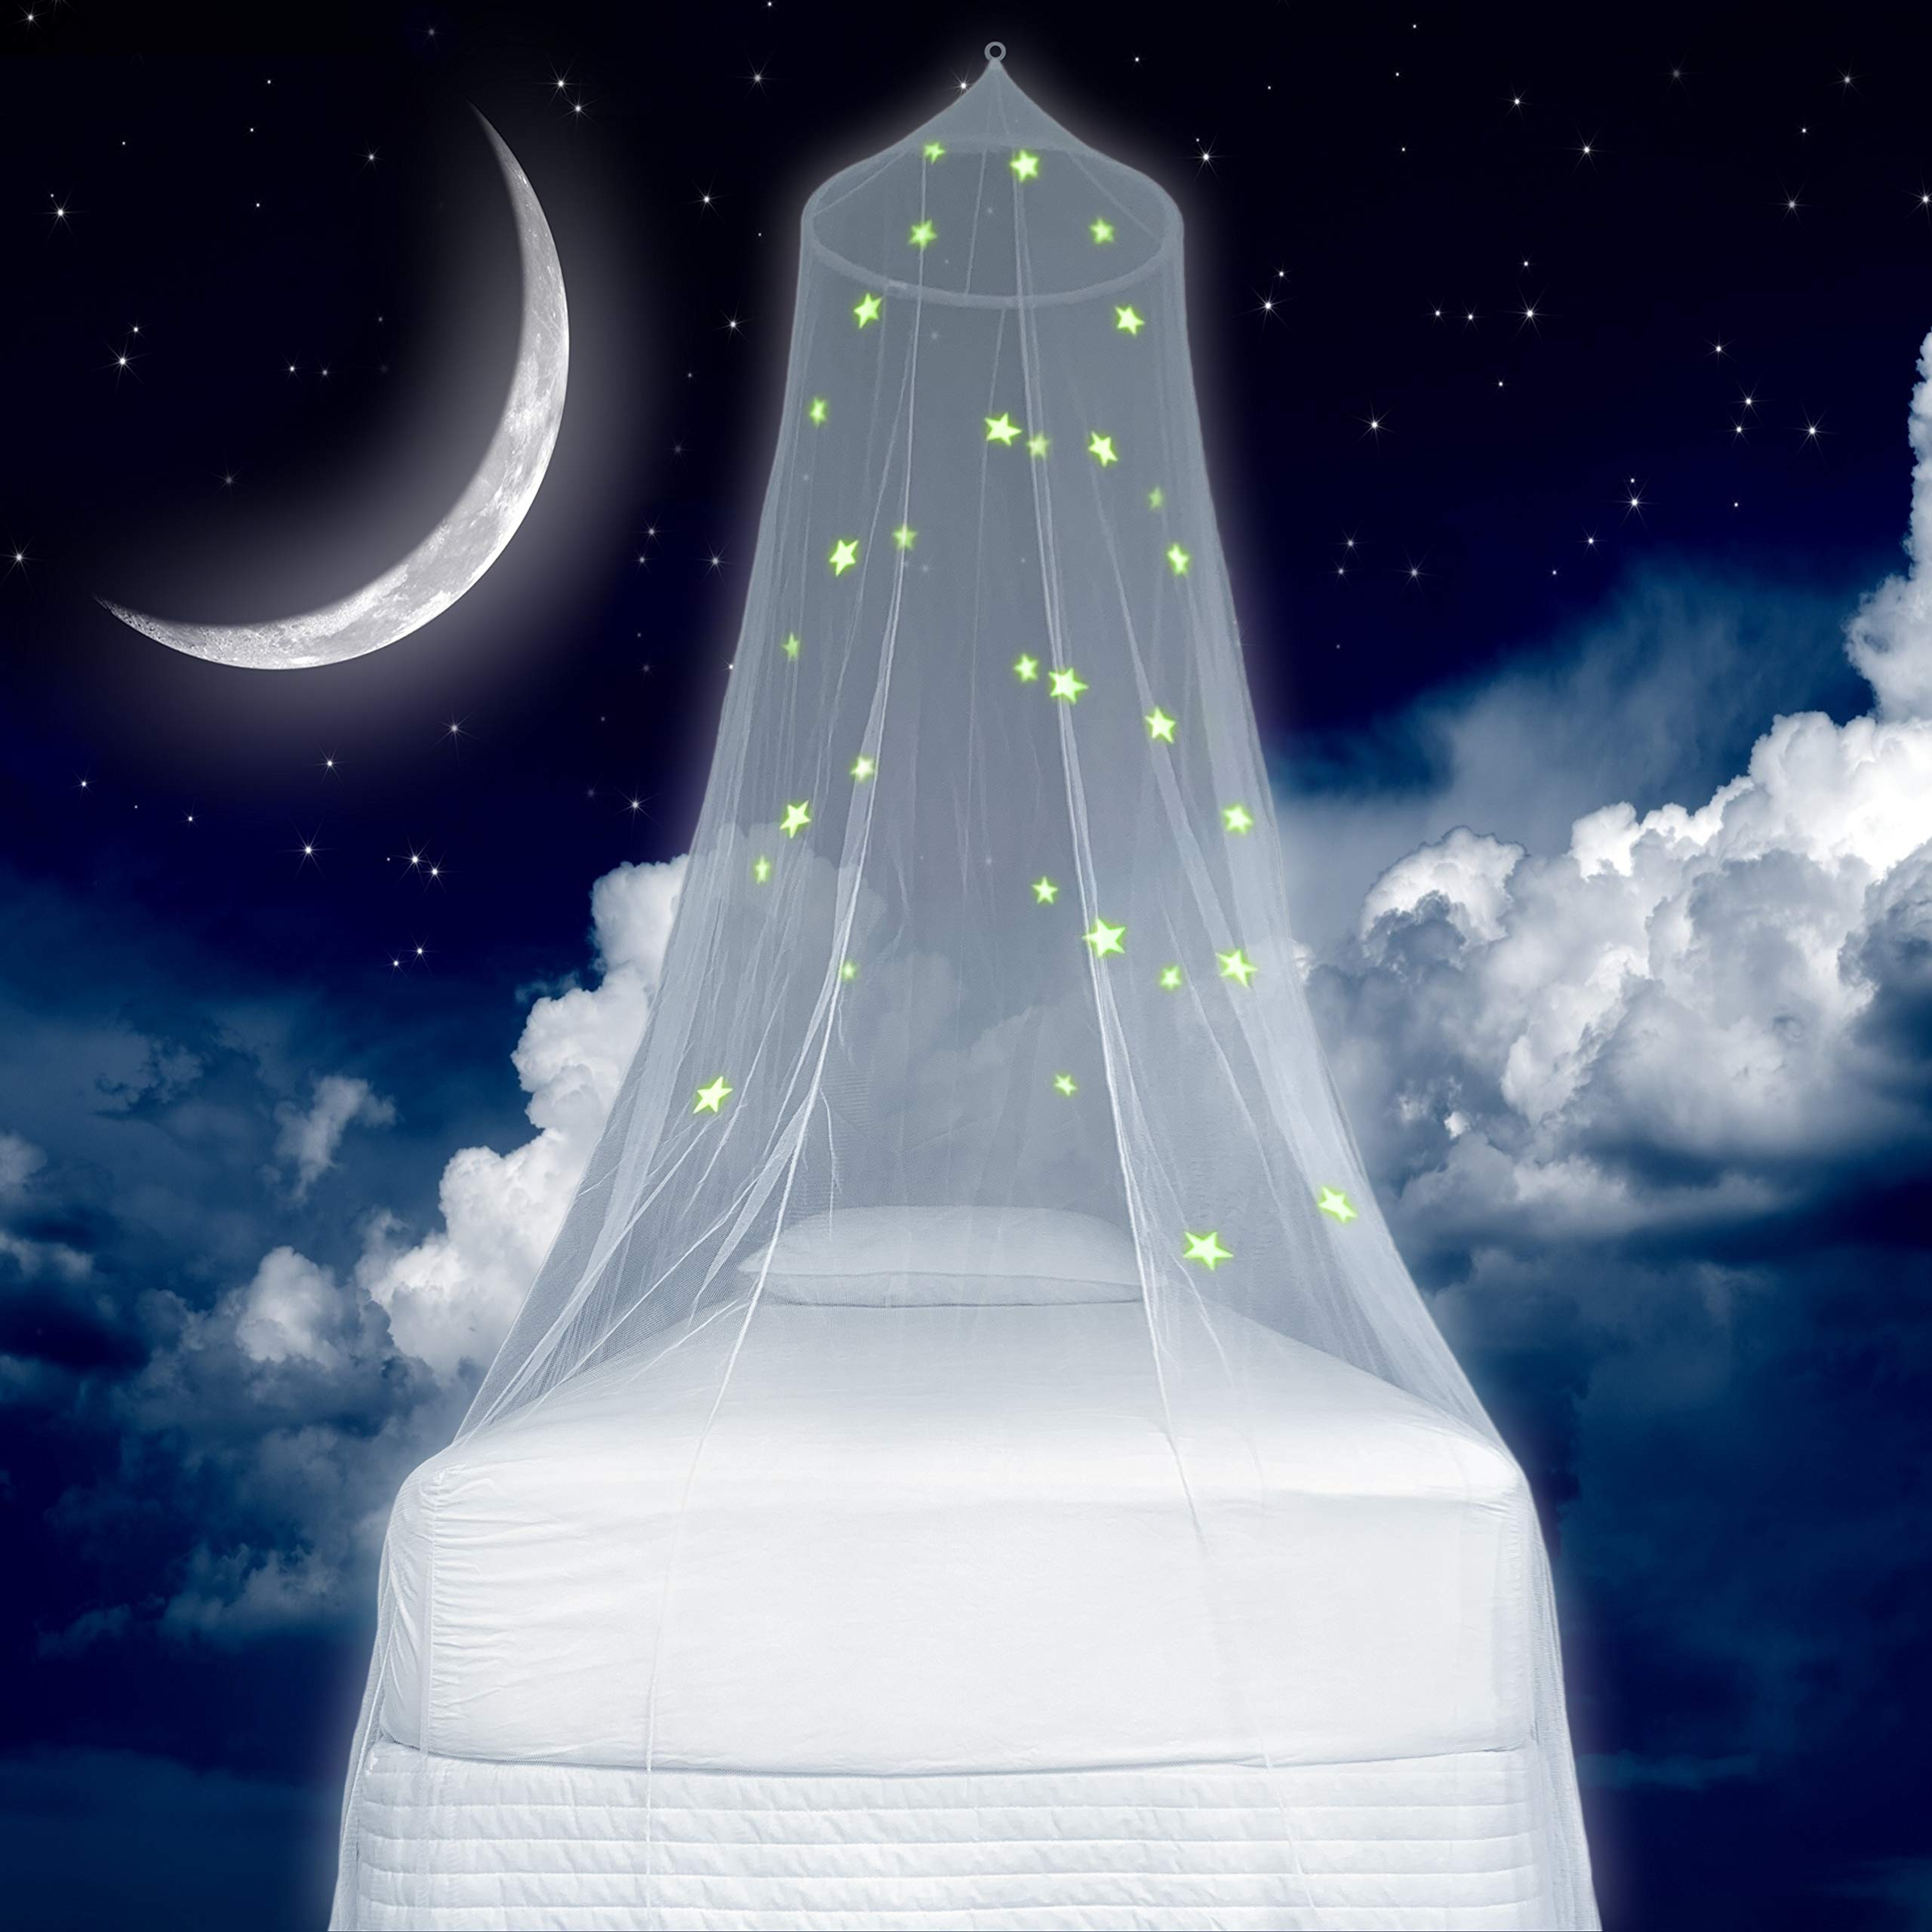 Zeke and Zoey Kids Hanging Bed Canopy for Girls Bed or Boys with Glow in The Dark Stars, The Bed Netting Stars Will Light up Your Child's own Galaxy. Ideal Bedroom Decorative Tent by Zeke and Zoey